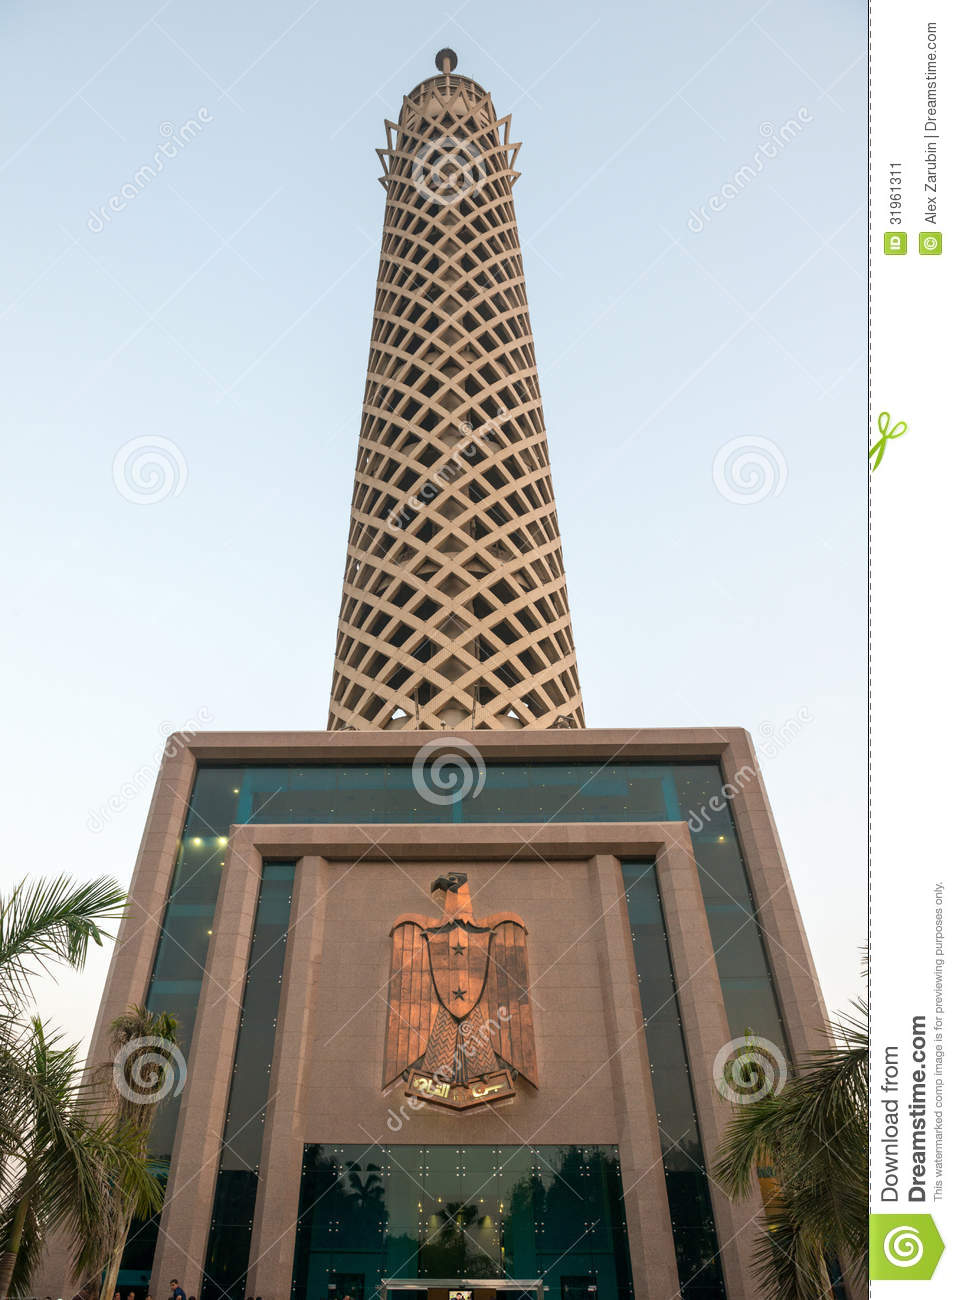 Alex Turm Sunset View Of Cairo Tower Stock Image - Image: 31961311